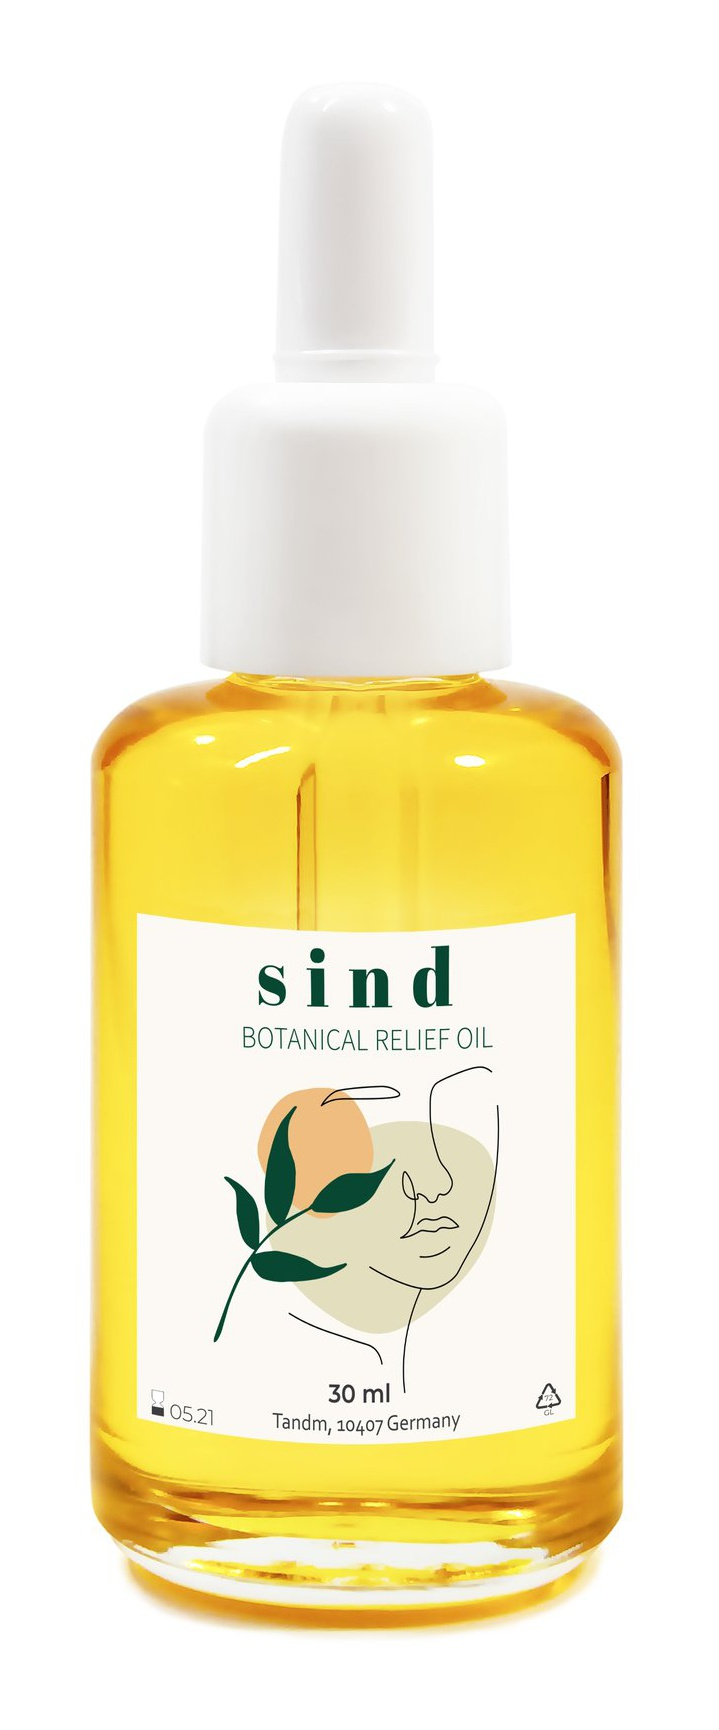 Sind Beauty Botanical Relief Oil